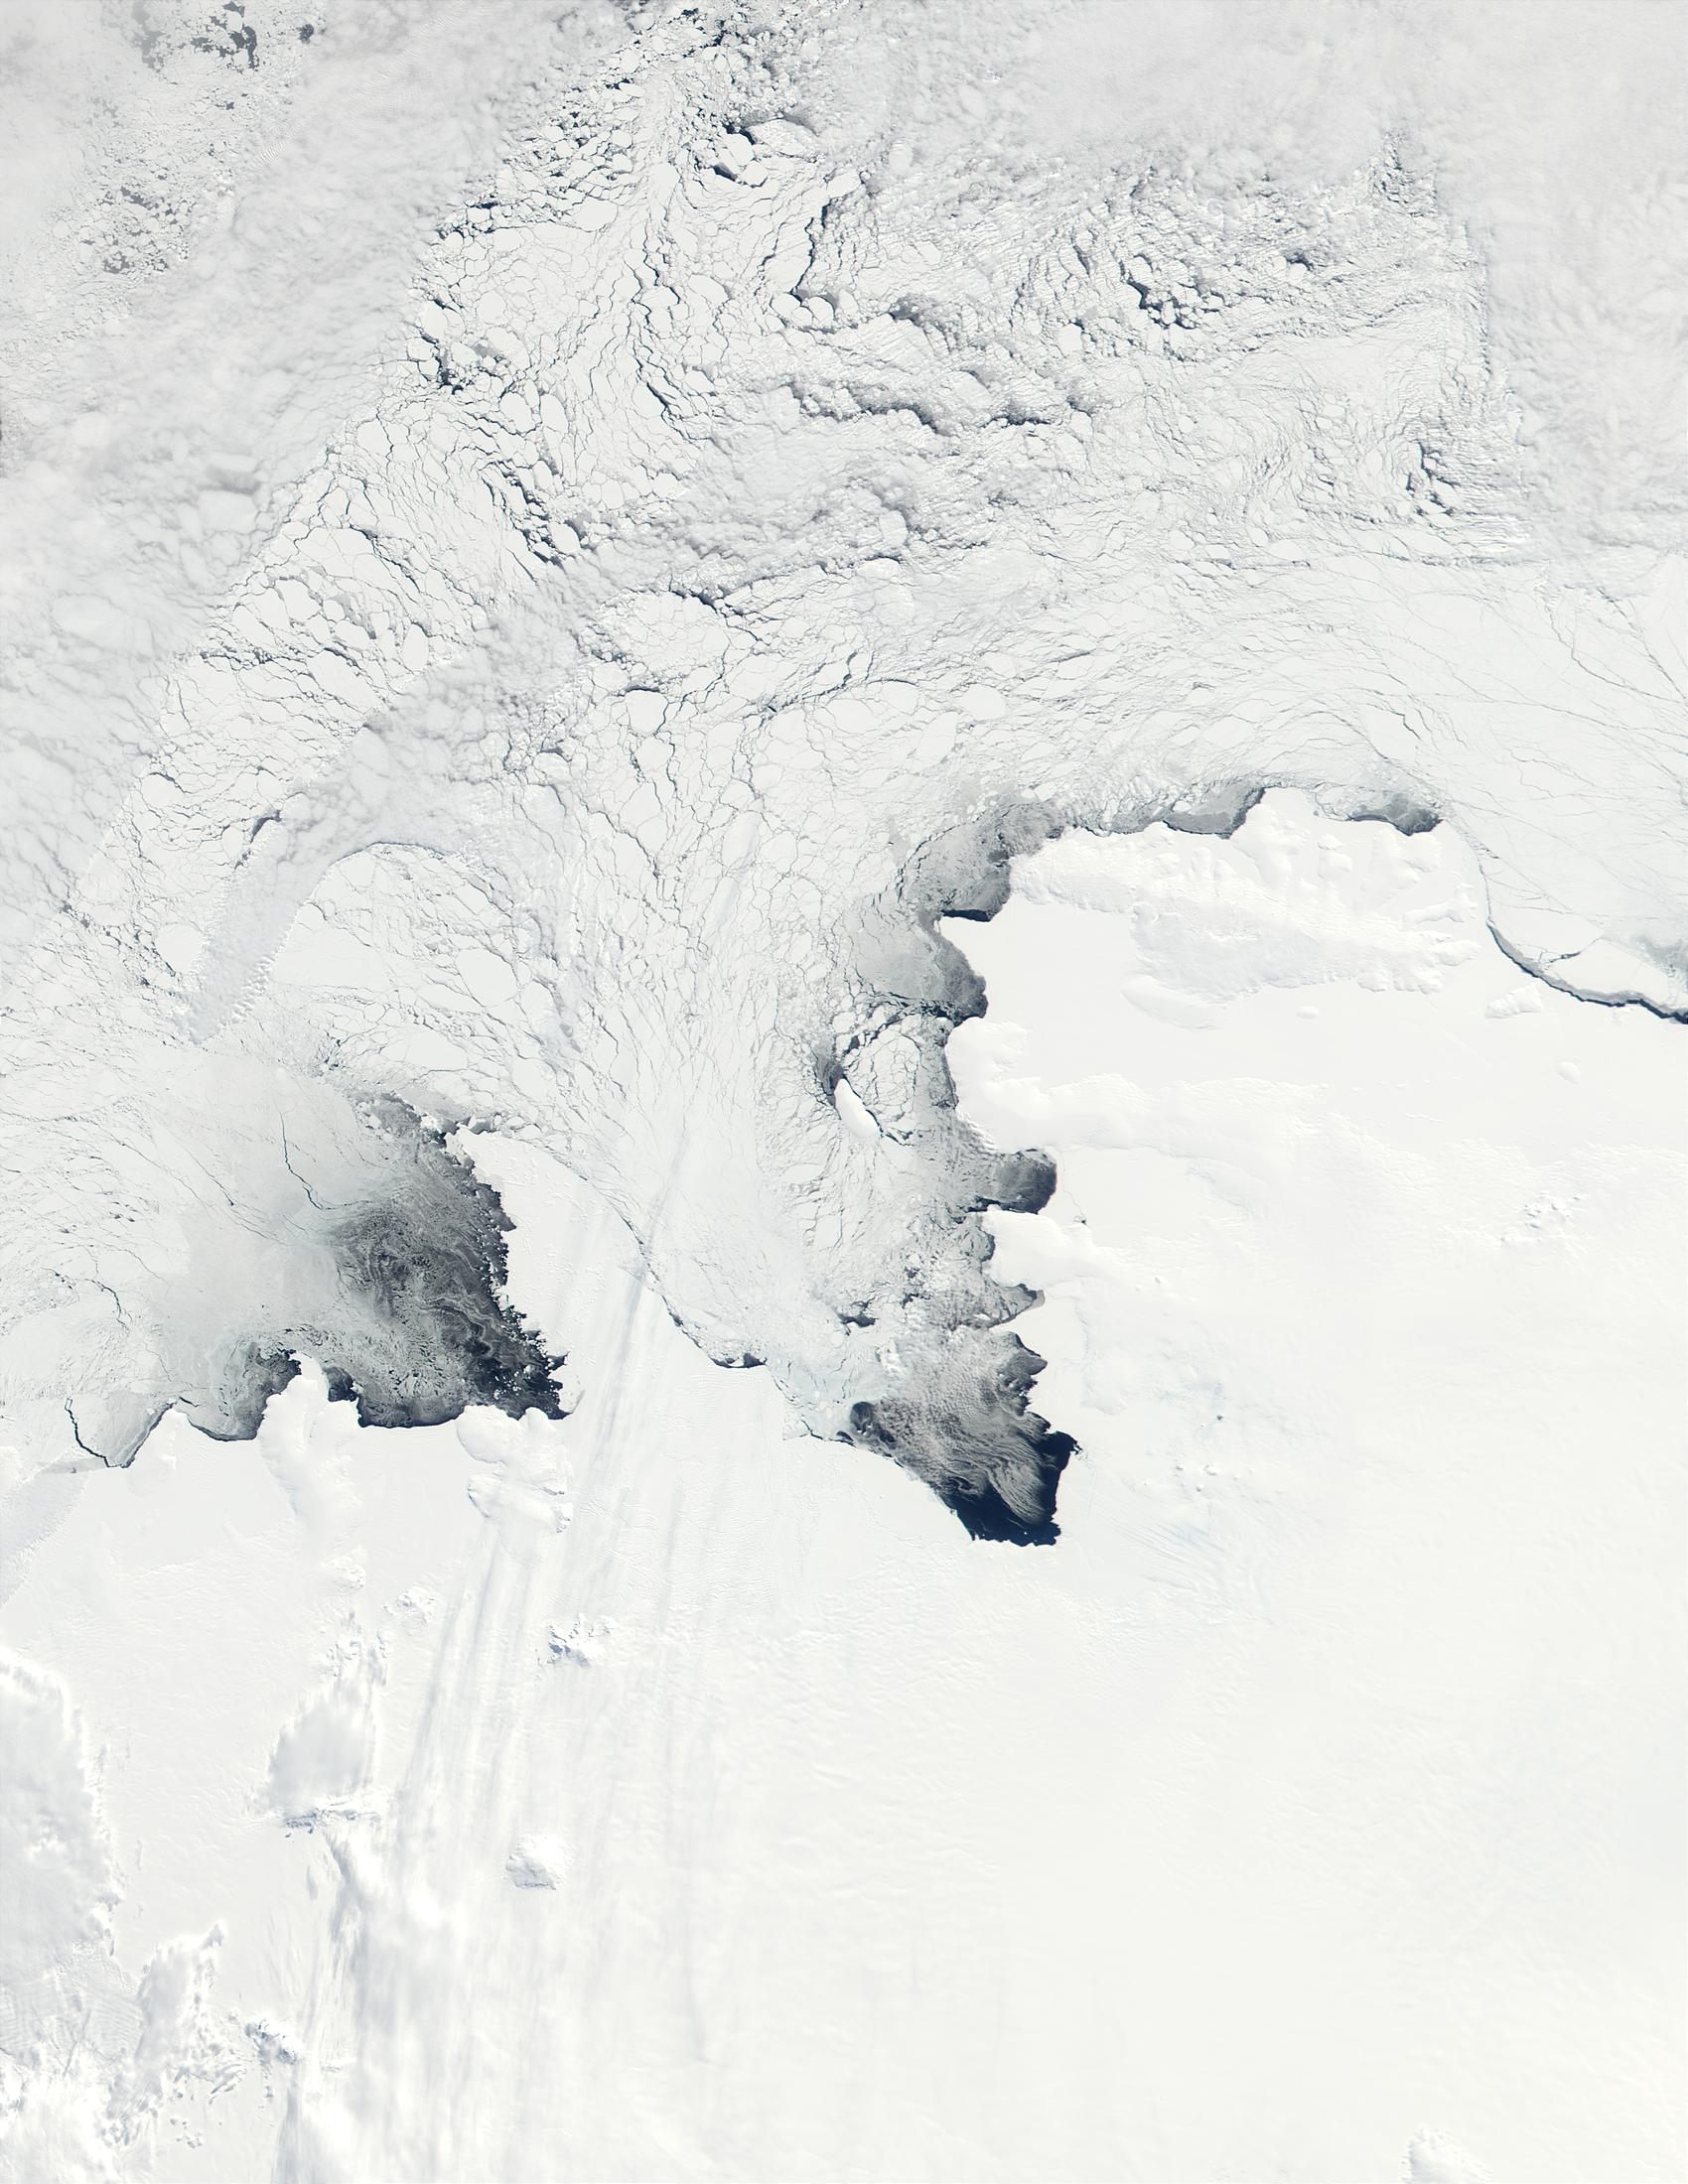 Walgreen Coast and Eights Coast, Antarctica - related image preview